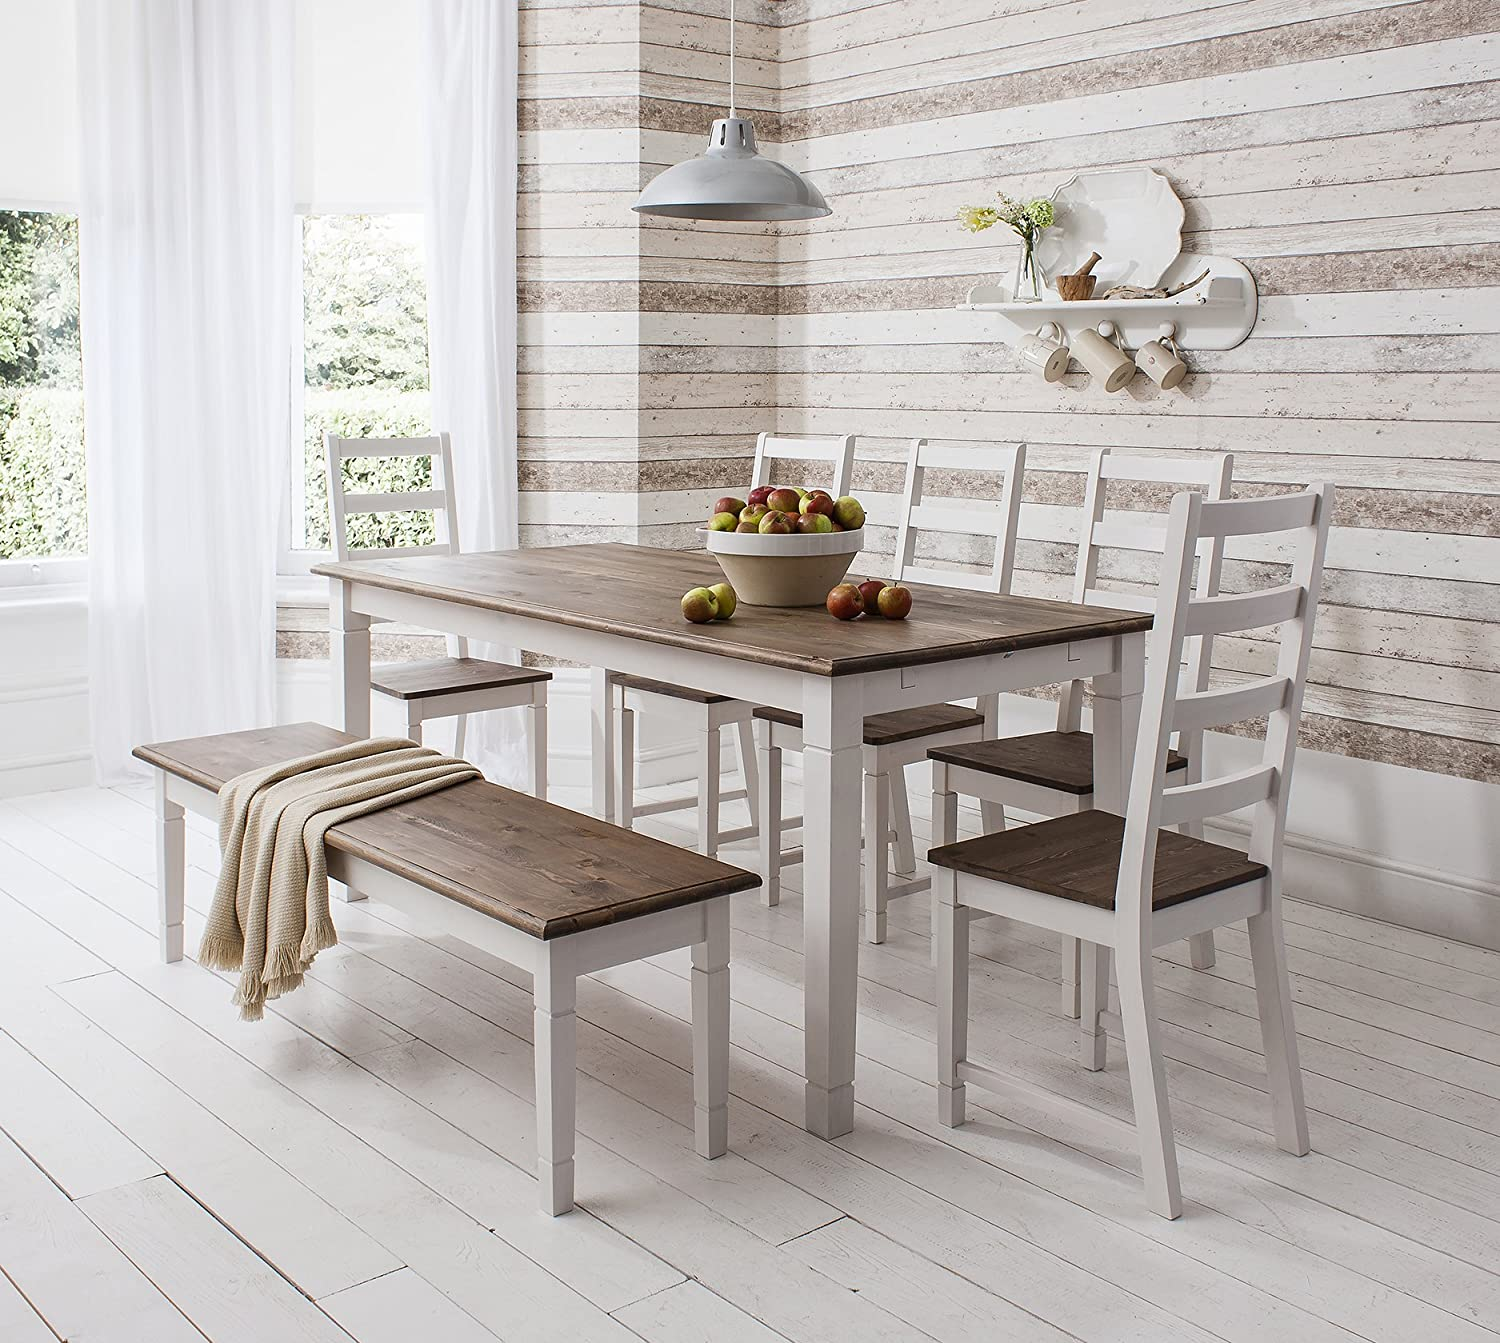 table and chairs. Table And 4 Chairs Bench Canterbury Dining In Contemporary Dark Pine White: Amazon.co.uk: Kitchen \u0026 Home I